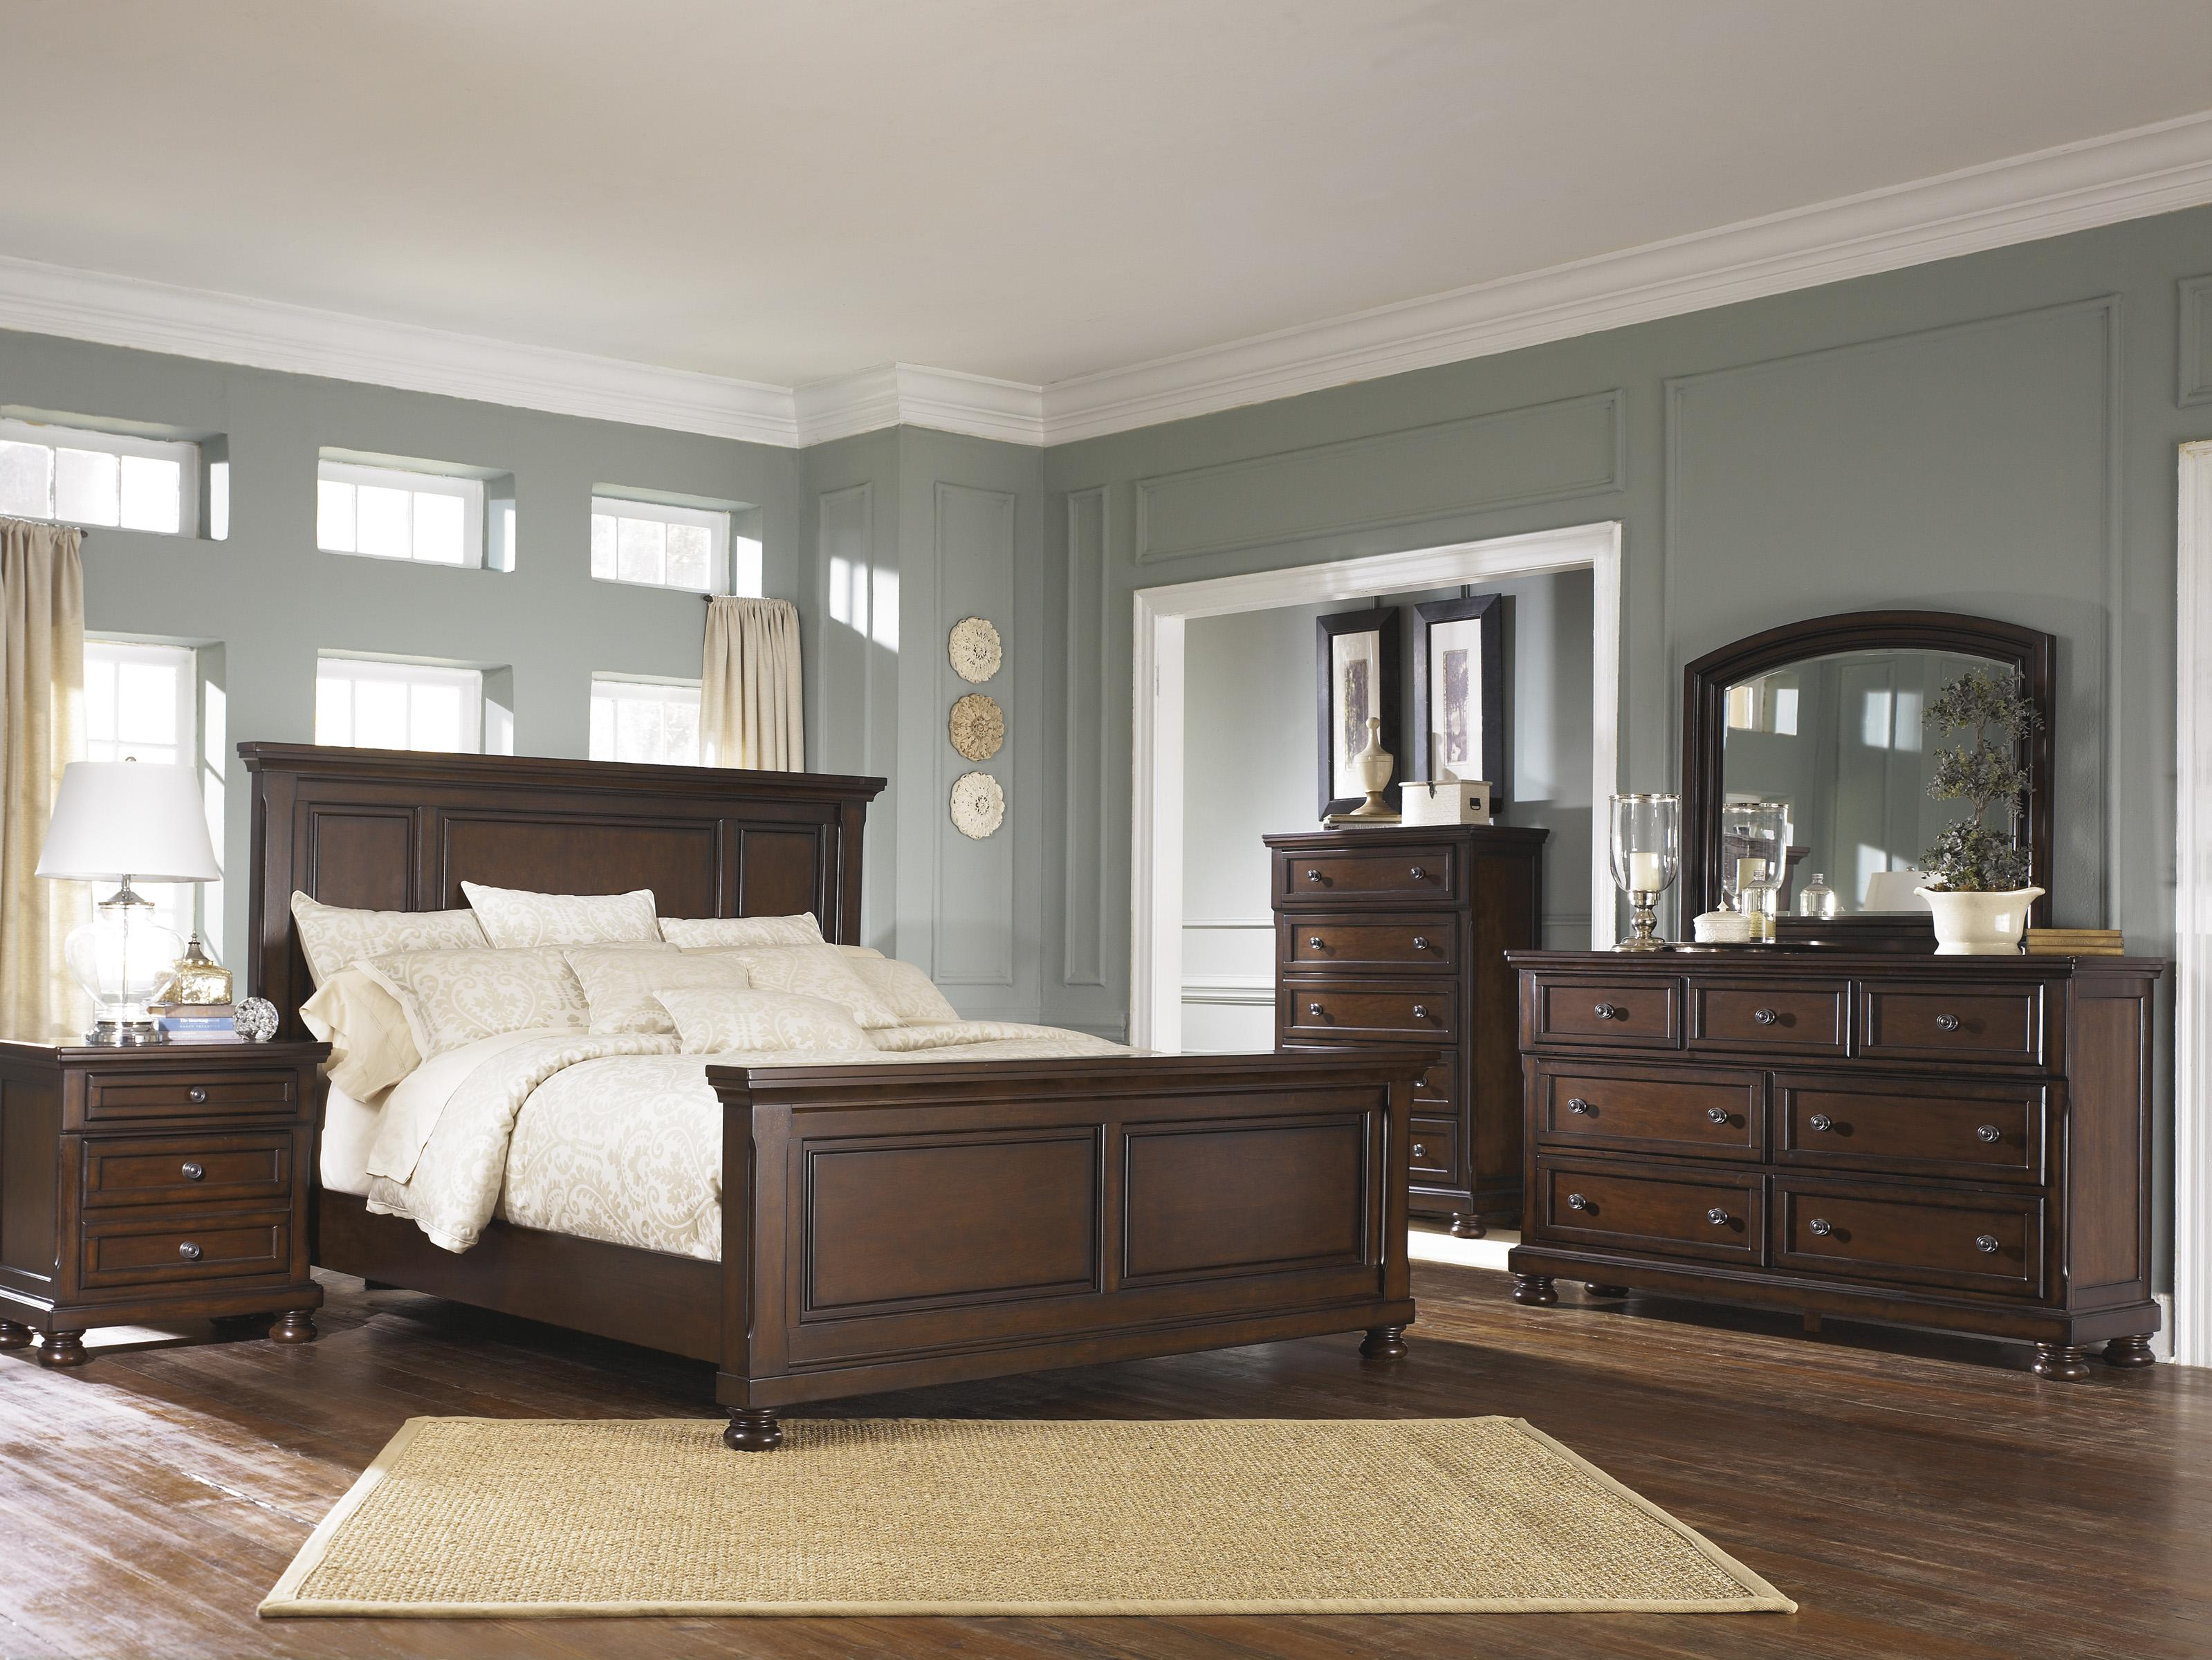 Ashley Furniture Porter Queen Bedroom Group Wayside Furniture Bedroom Groups